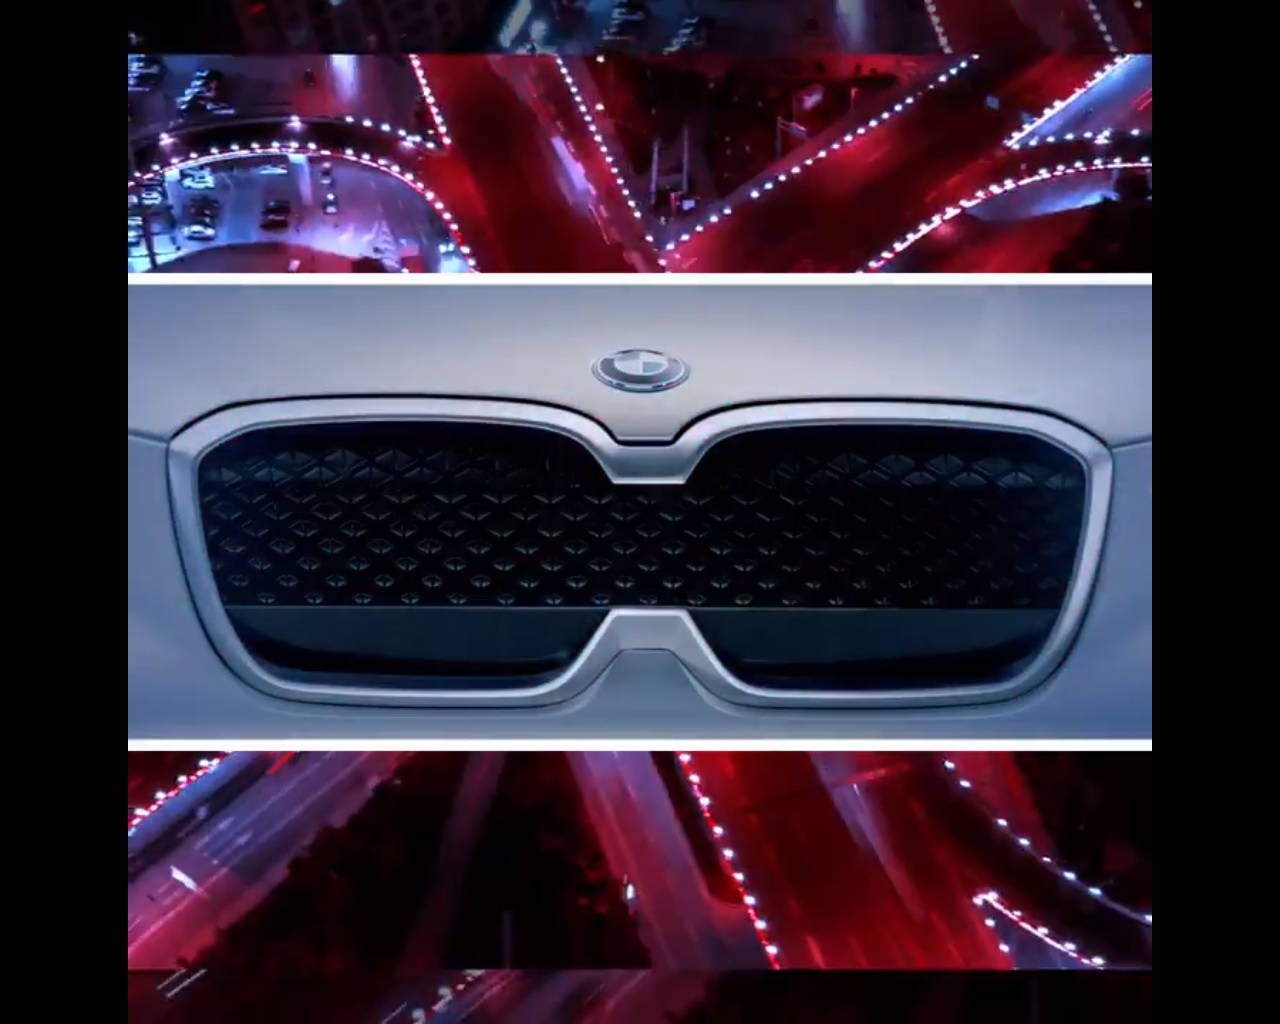 bmw-concept-ix3-electric-suv-teased-ahead-of-auto-china-2018-world-premiere-125139_1.jpg